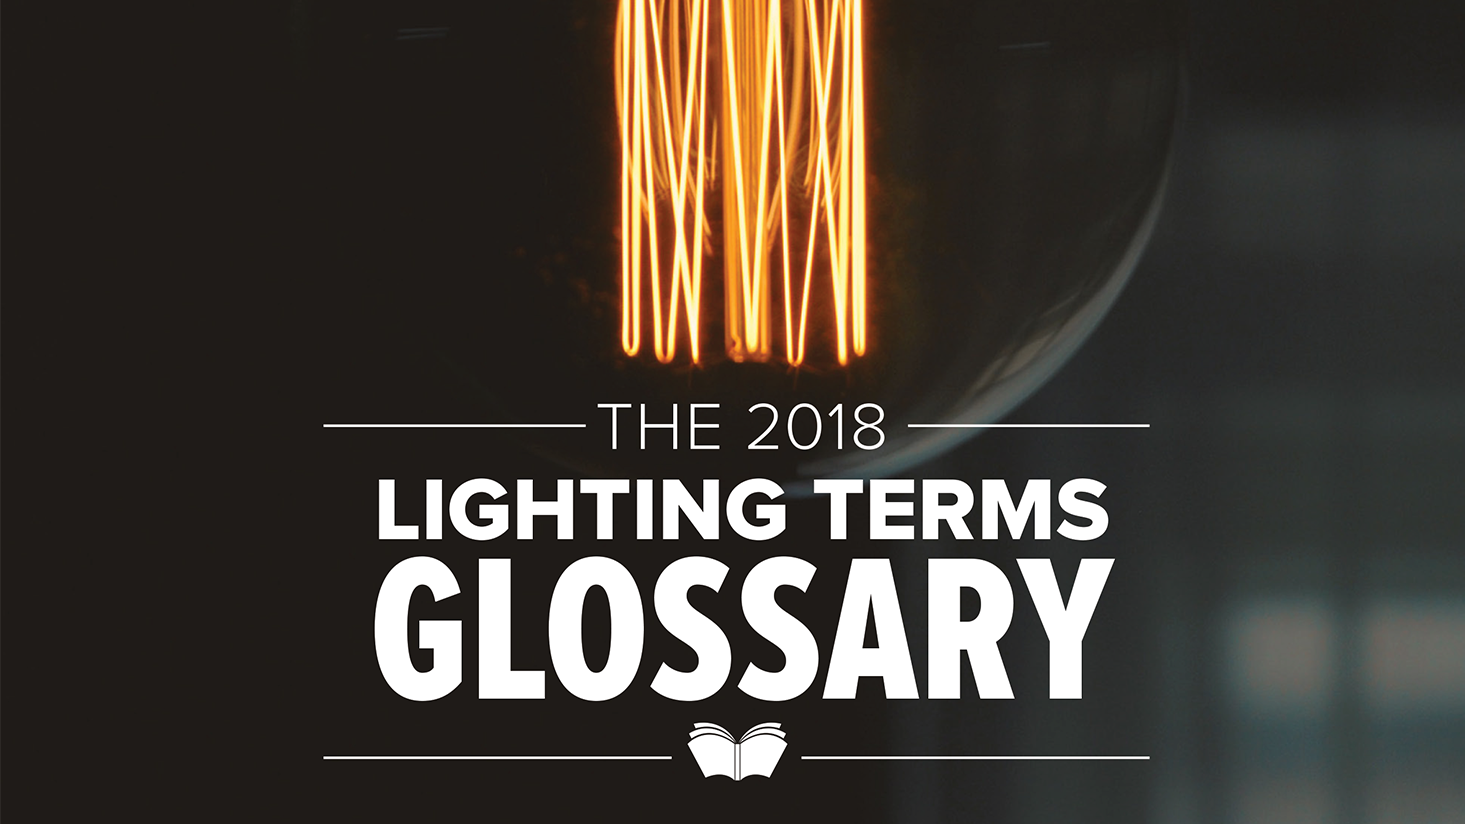 Shunted Vs Non Sockets How To Tell What You Need Two Light Fixture Socket Wiring Diagram Lighting Terms Glossary 2018 Edition